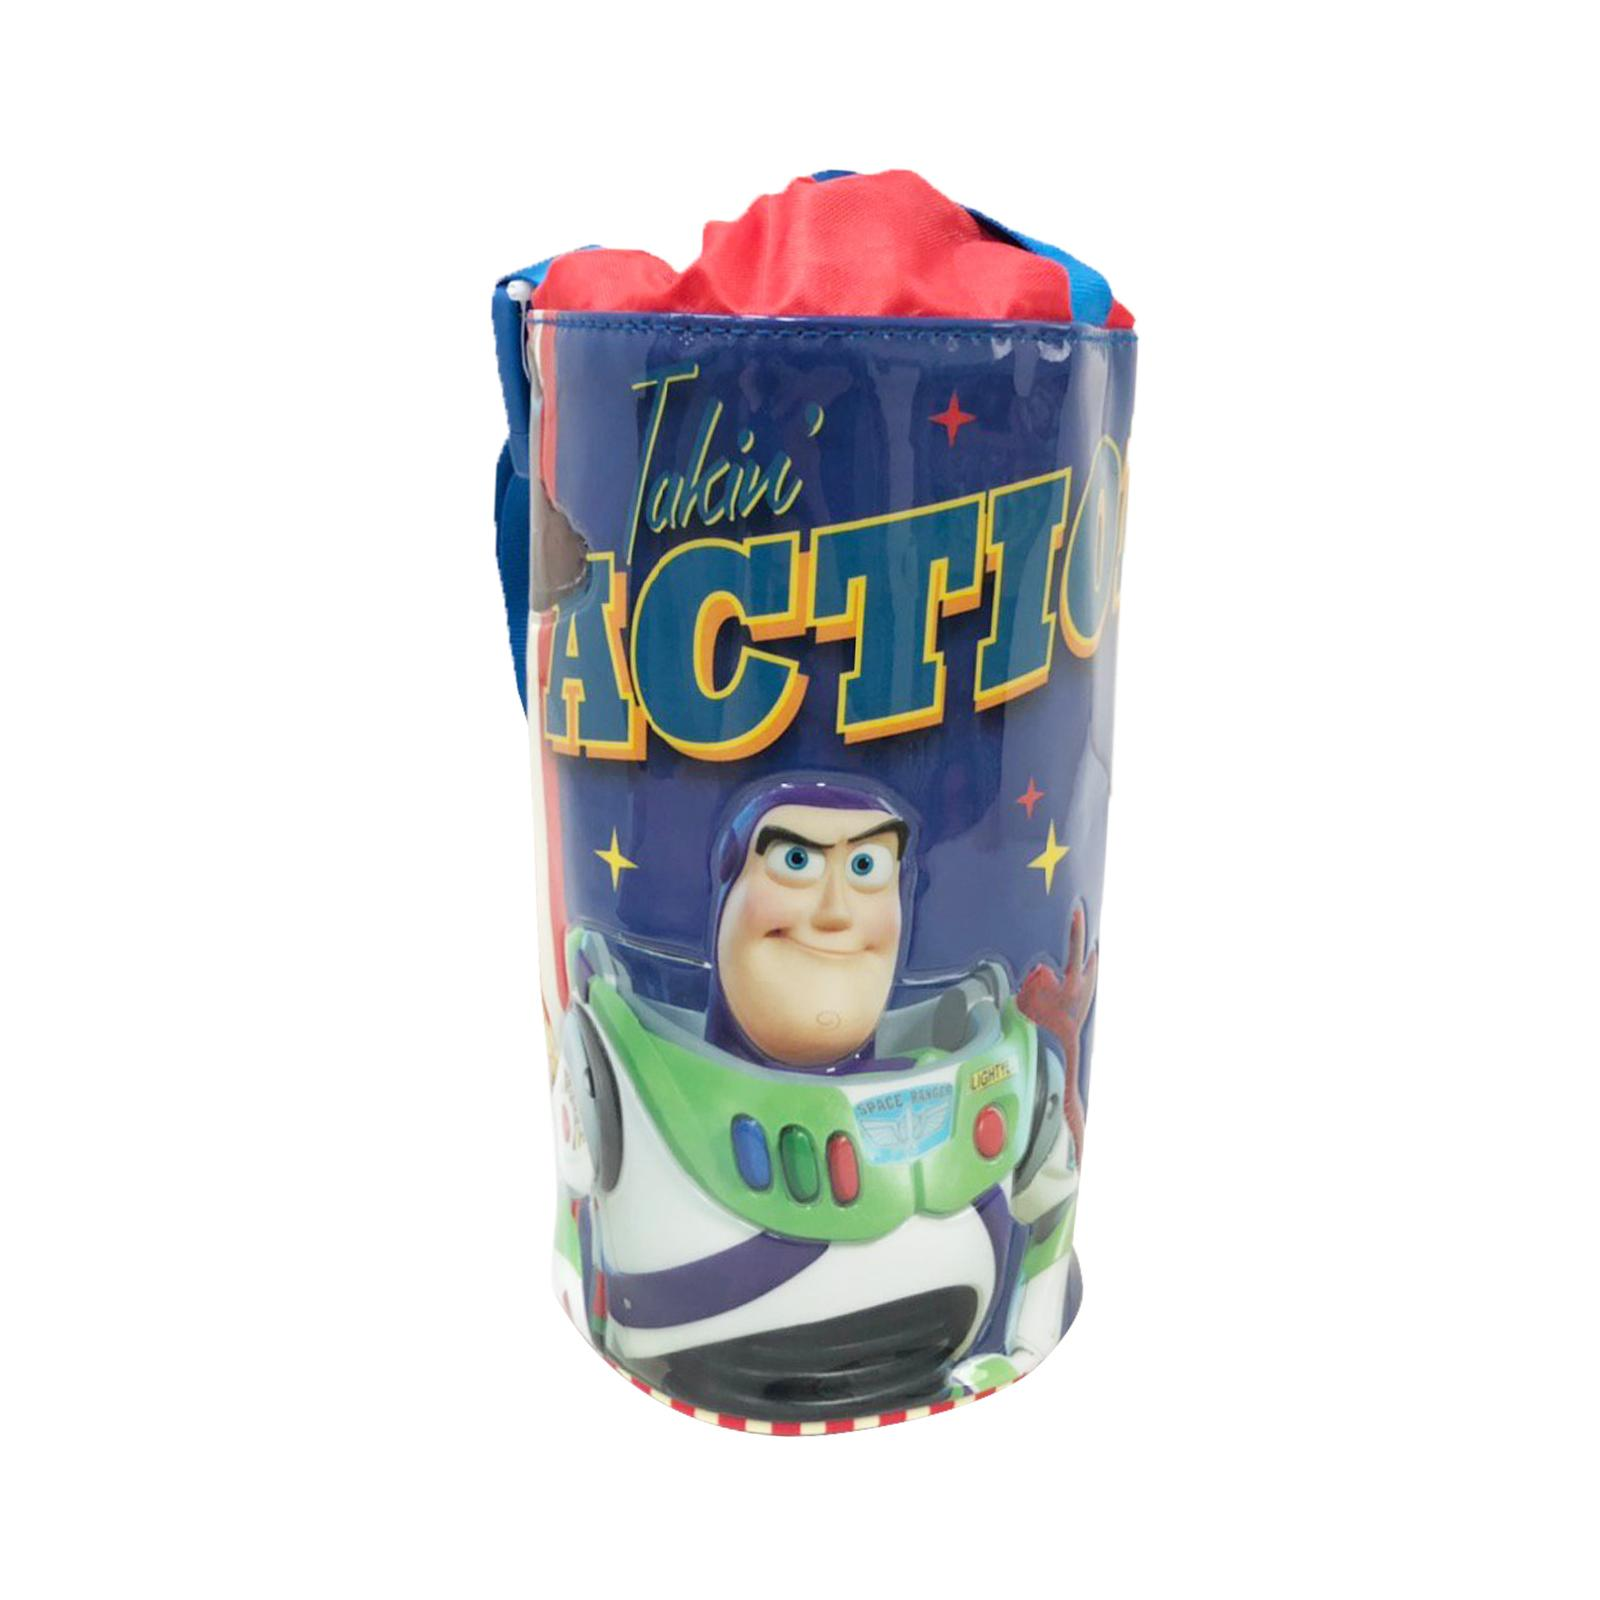 Toy Story 4 water bottle holder